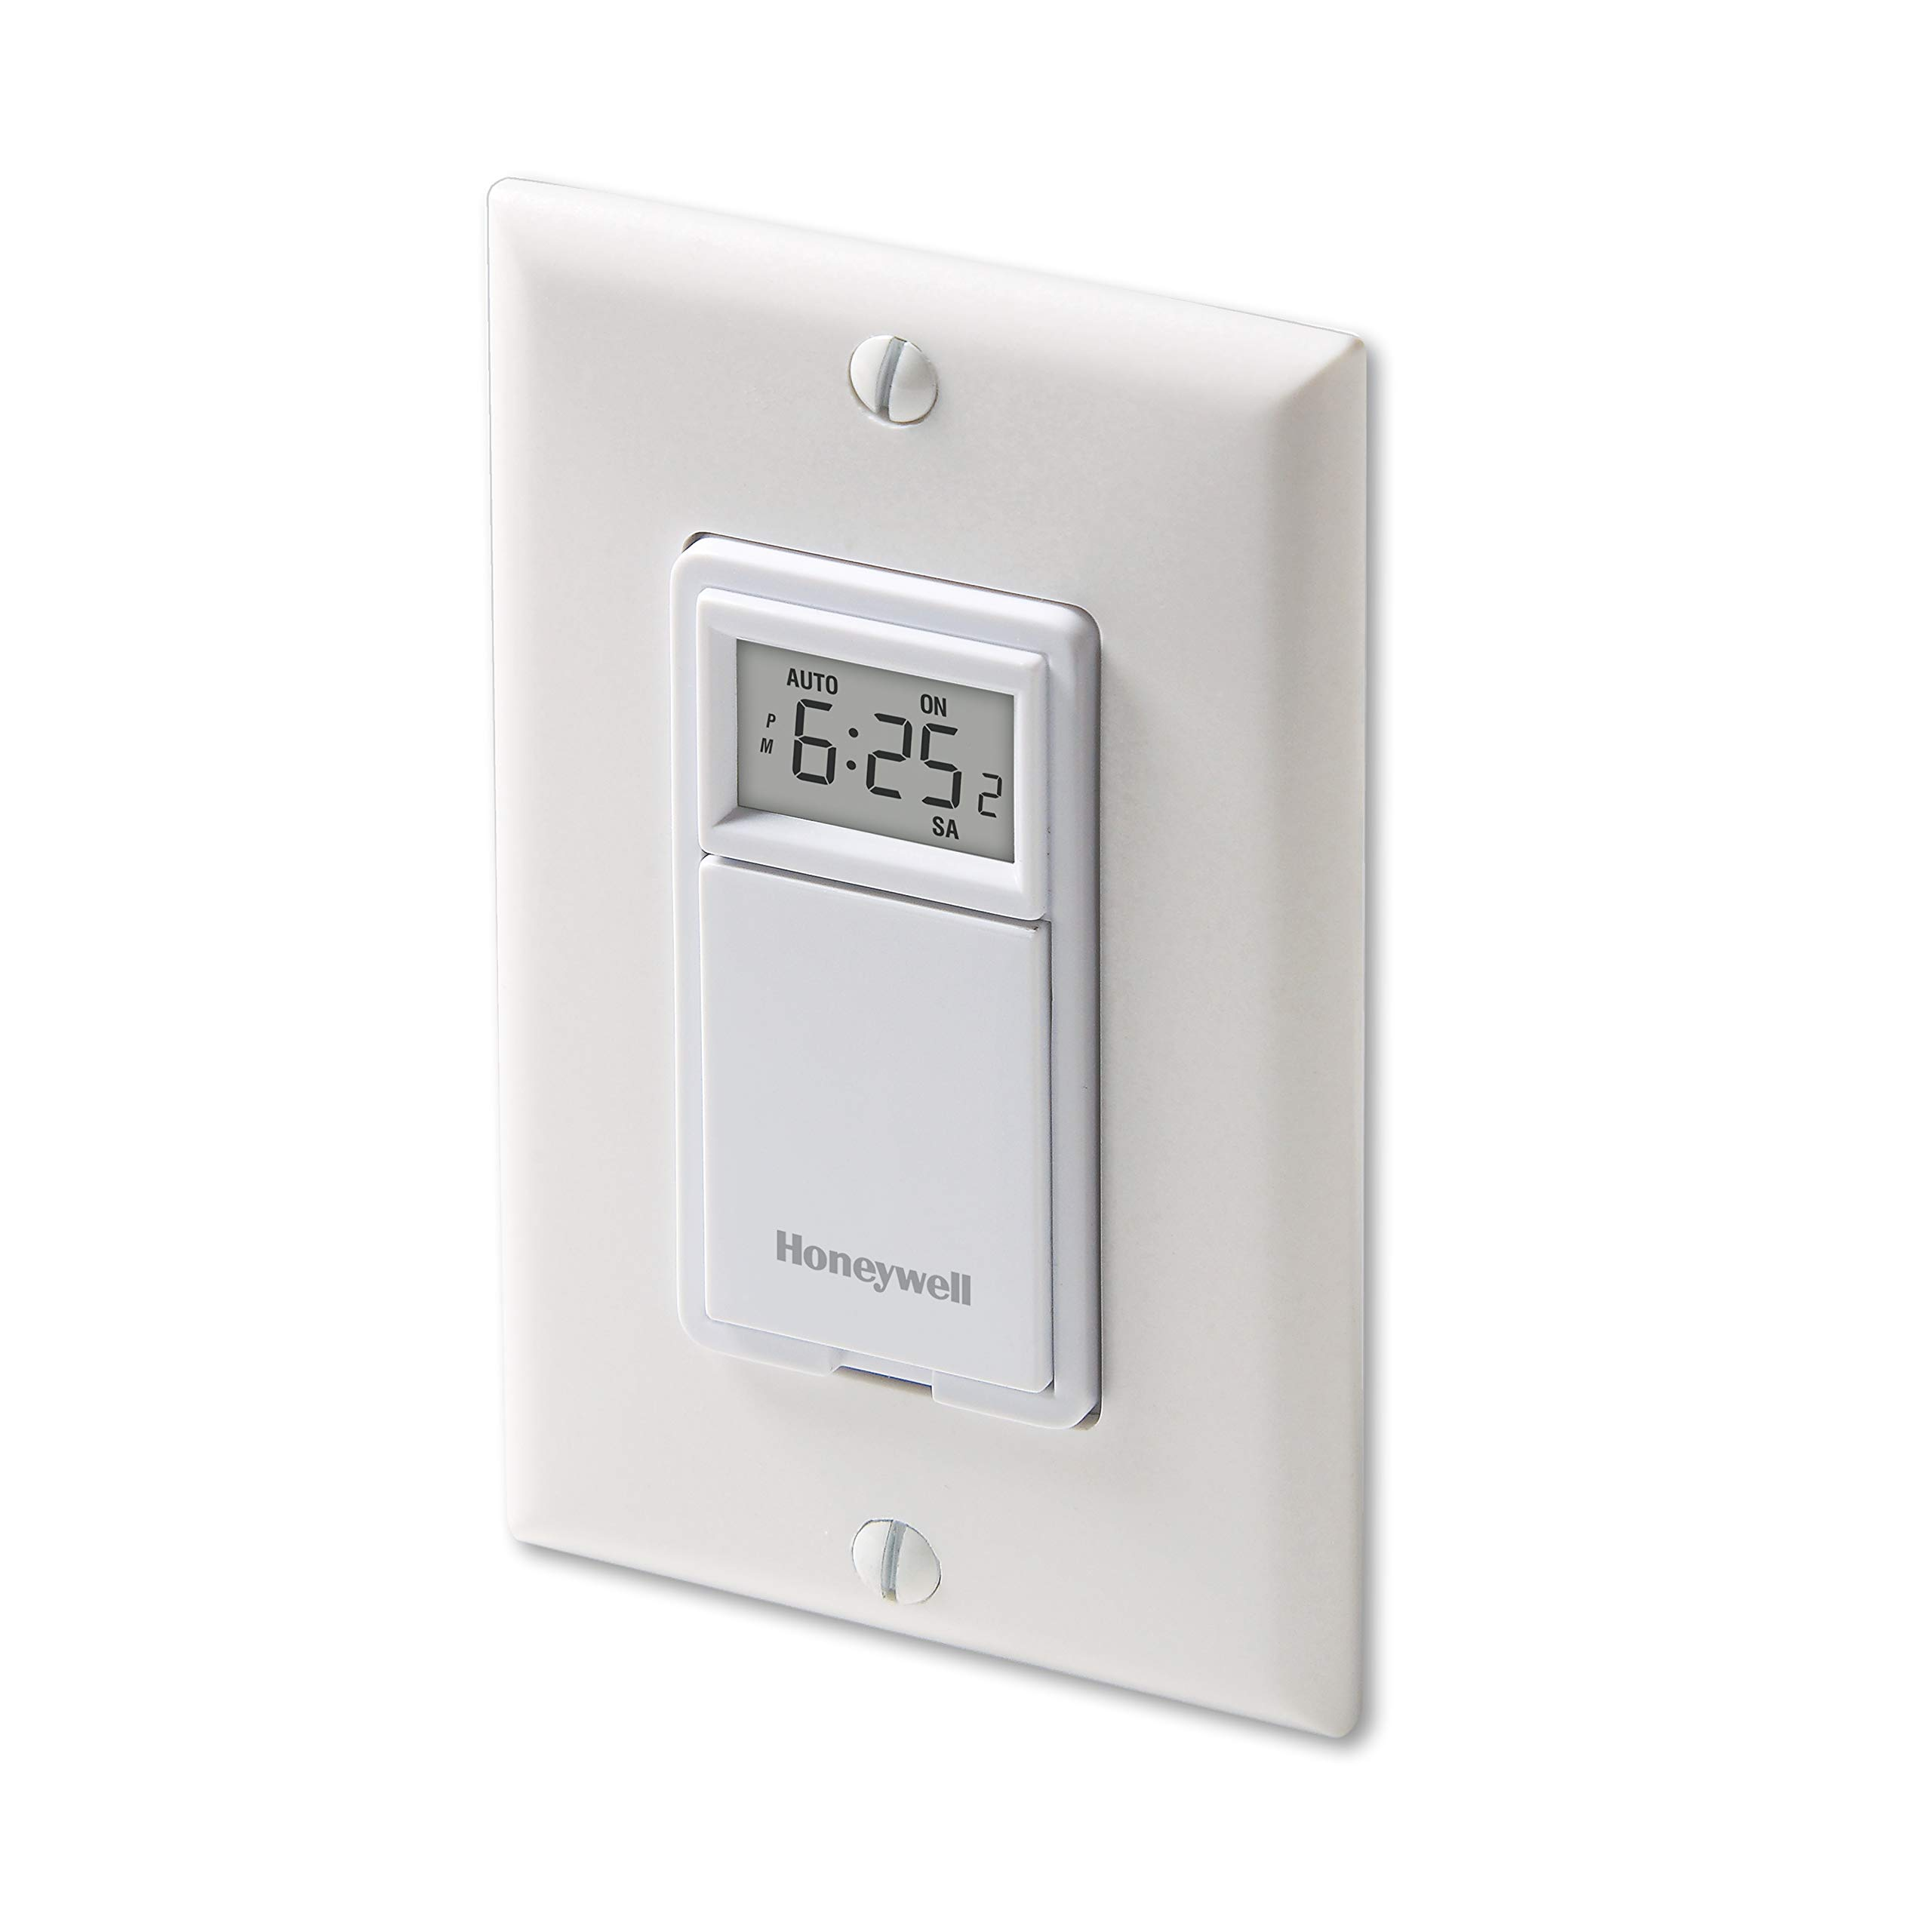 Honeywell RPLS730B1000/U RPLS730B1000 7-Day Programmable Light Switch Timer, White by Honeywell